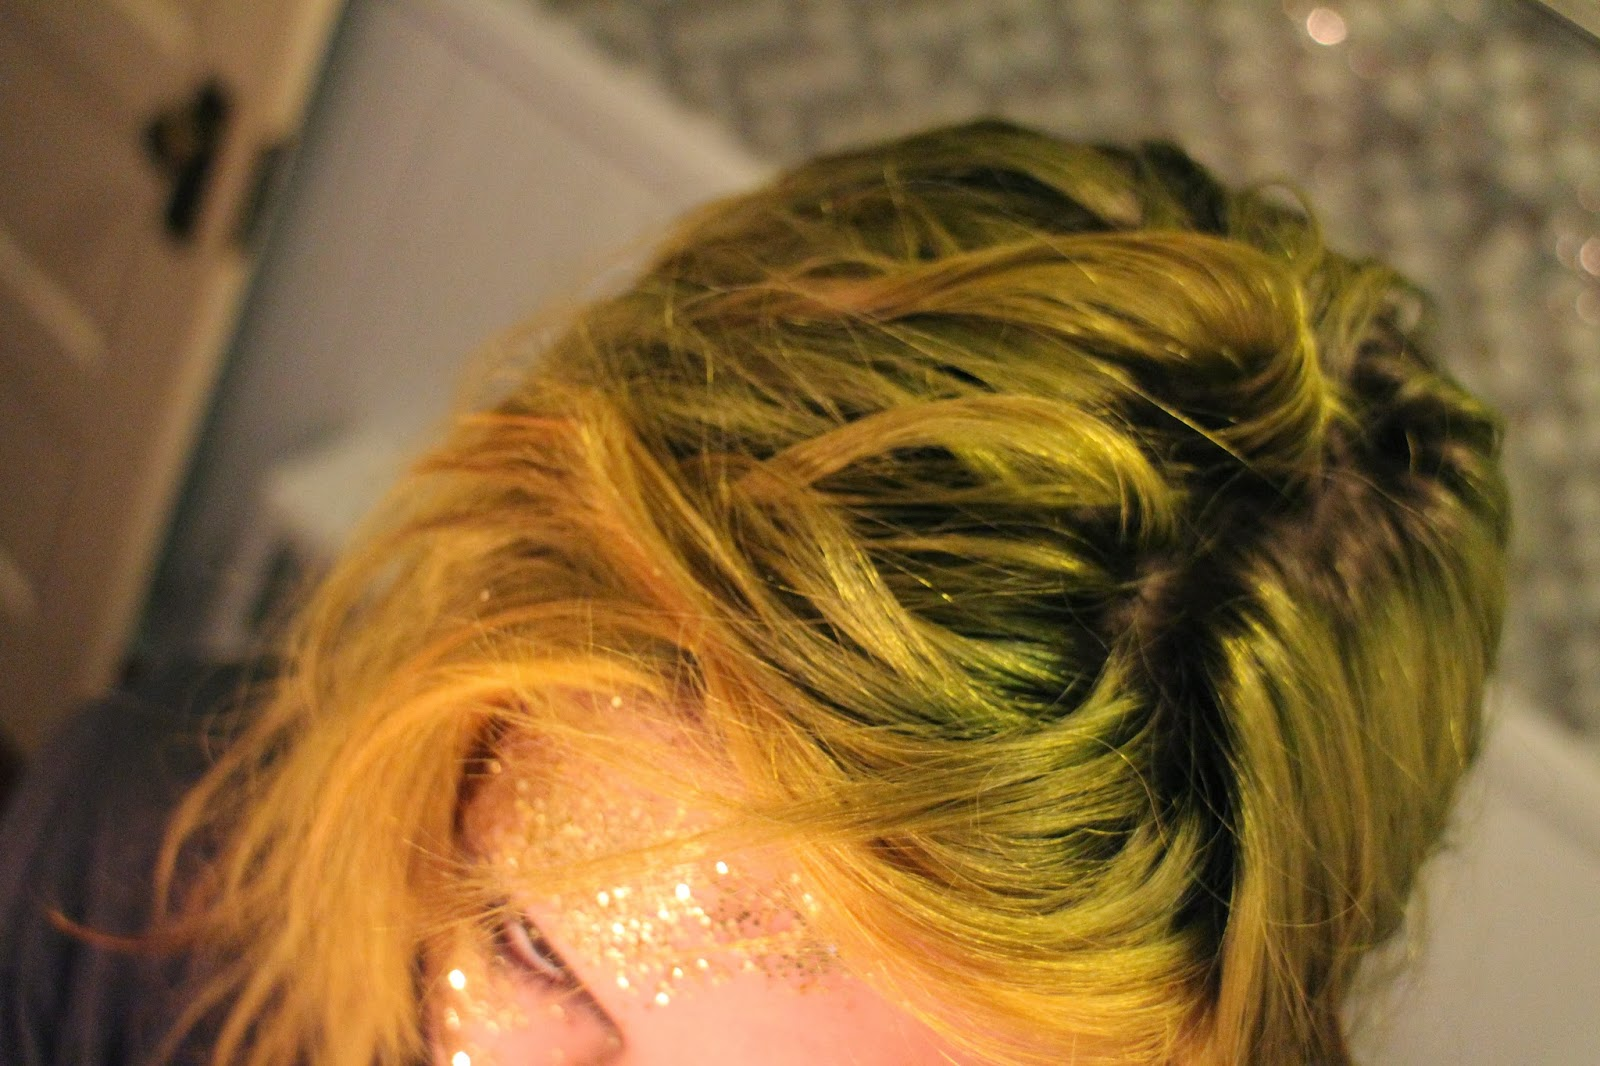 two-tone green and yellow hair with dark roots, grunge hair, stuffeddoggie, glitterface makeup. disco-ball face, using glue to put sparkles on face, glitter makeup, halloween, james bond face makeup